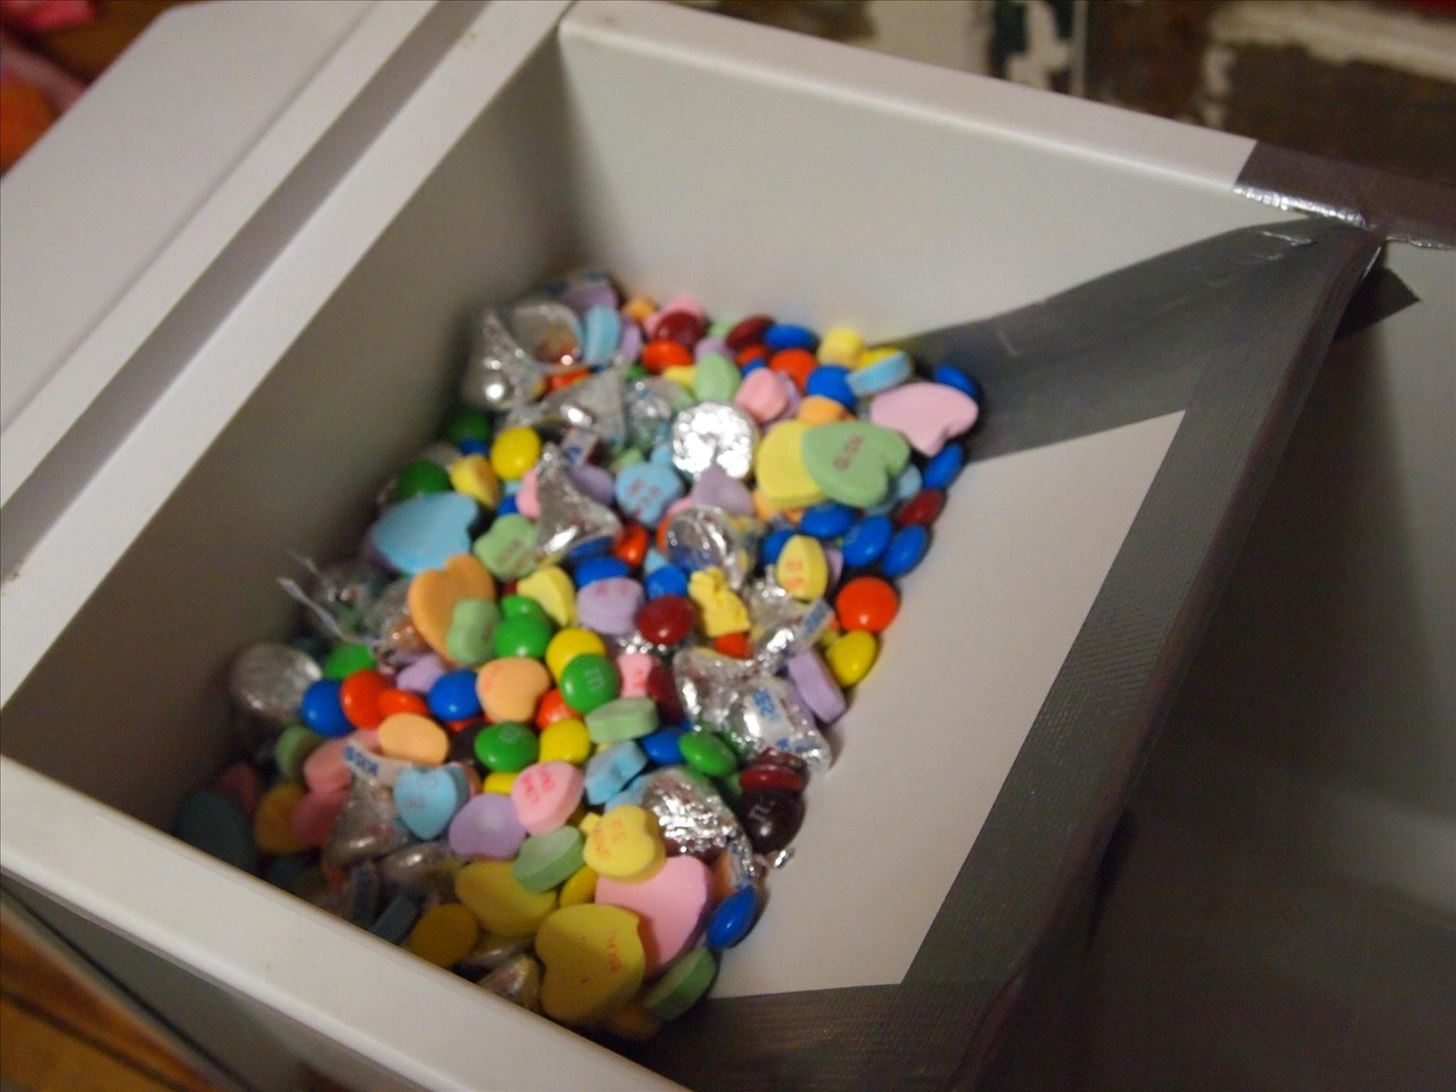 How to Turn Your Freezer's Ice Maker into a Candy Dispenser